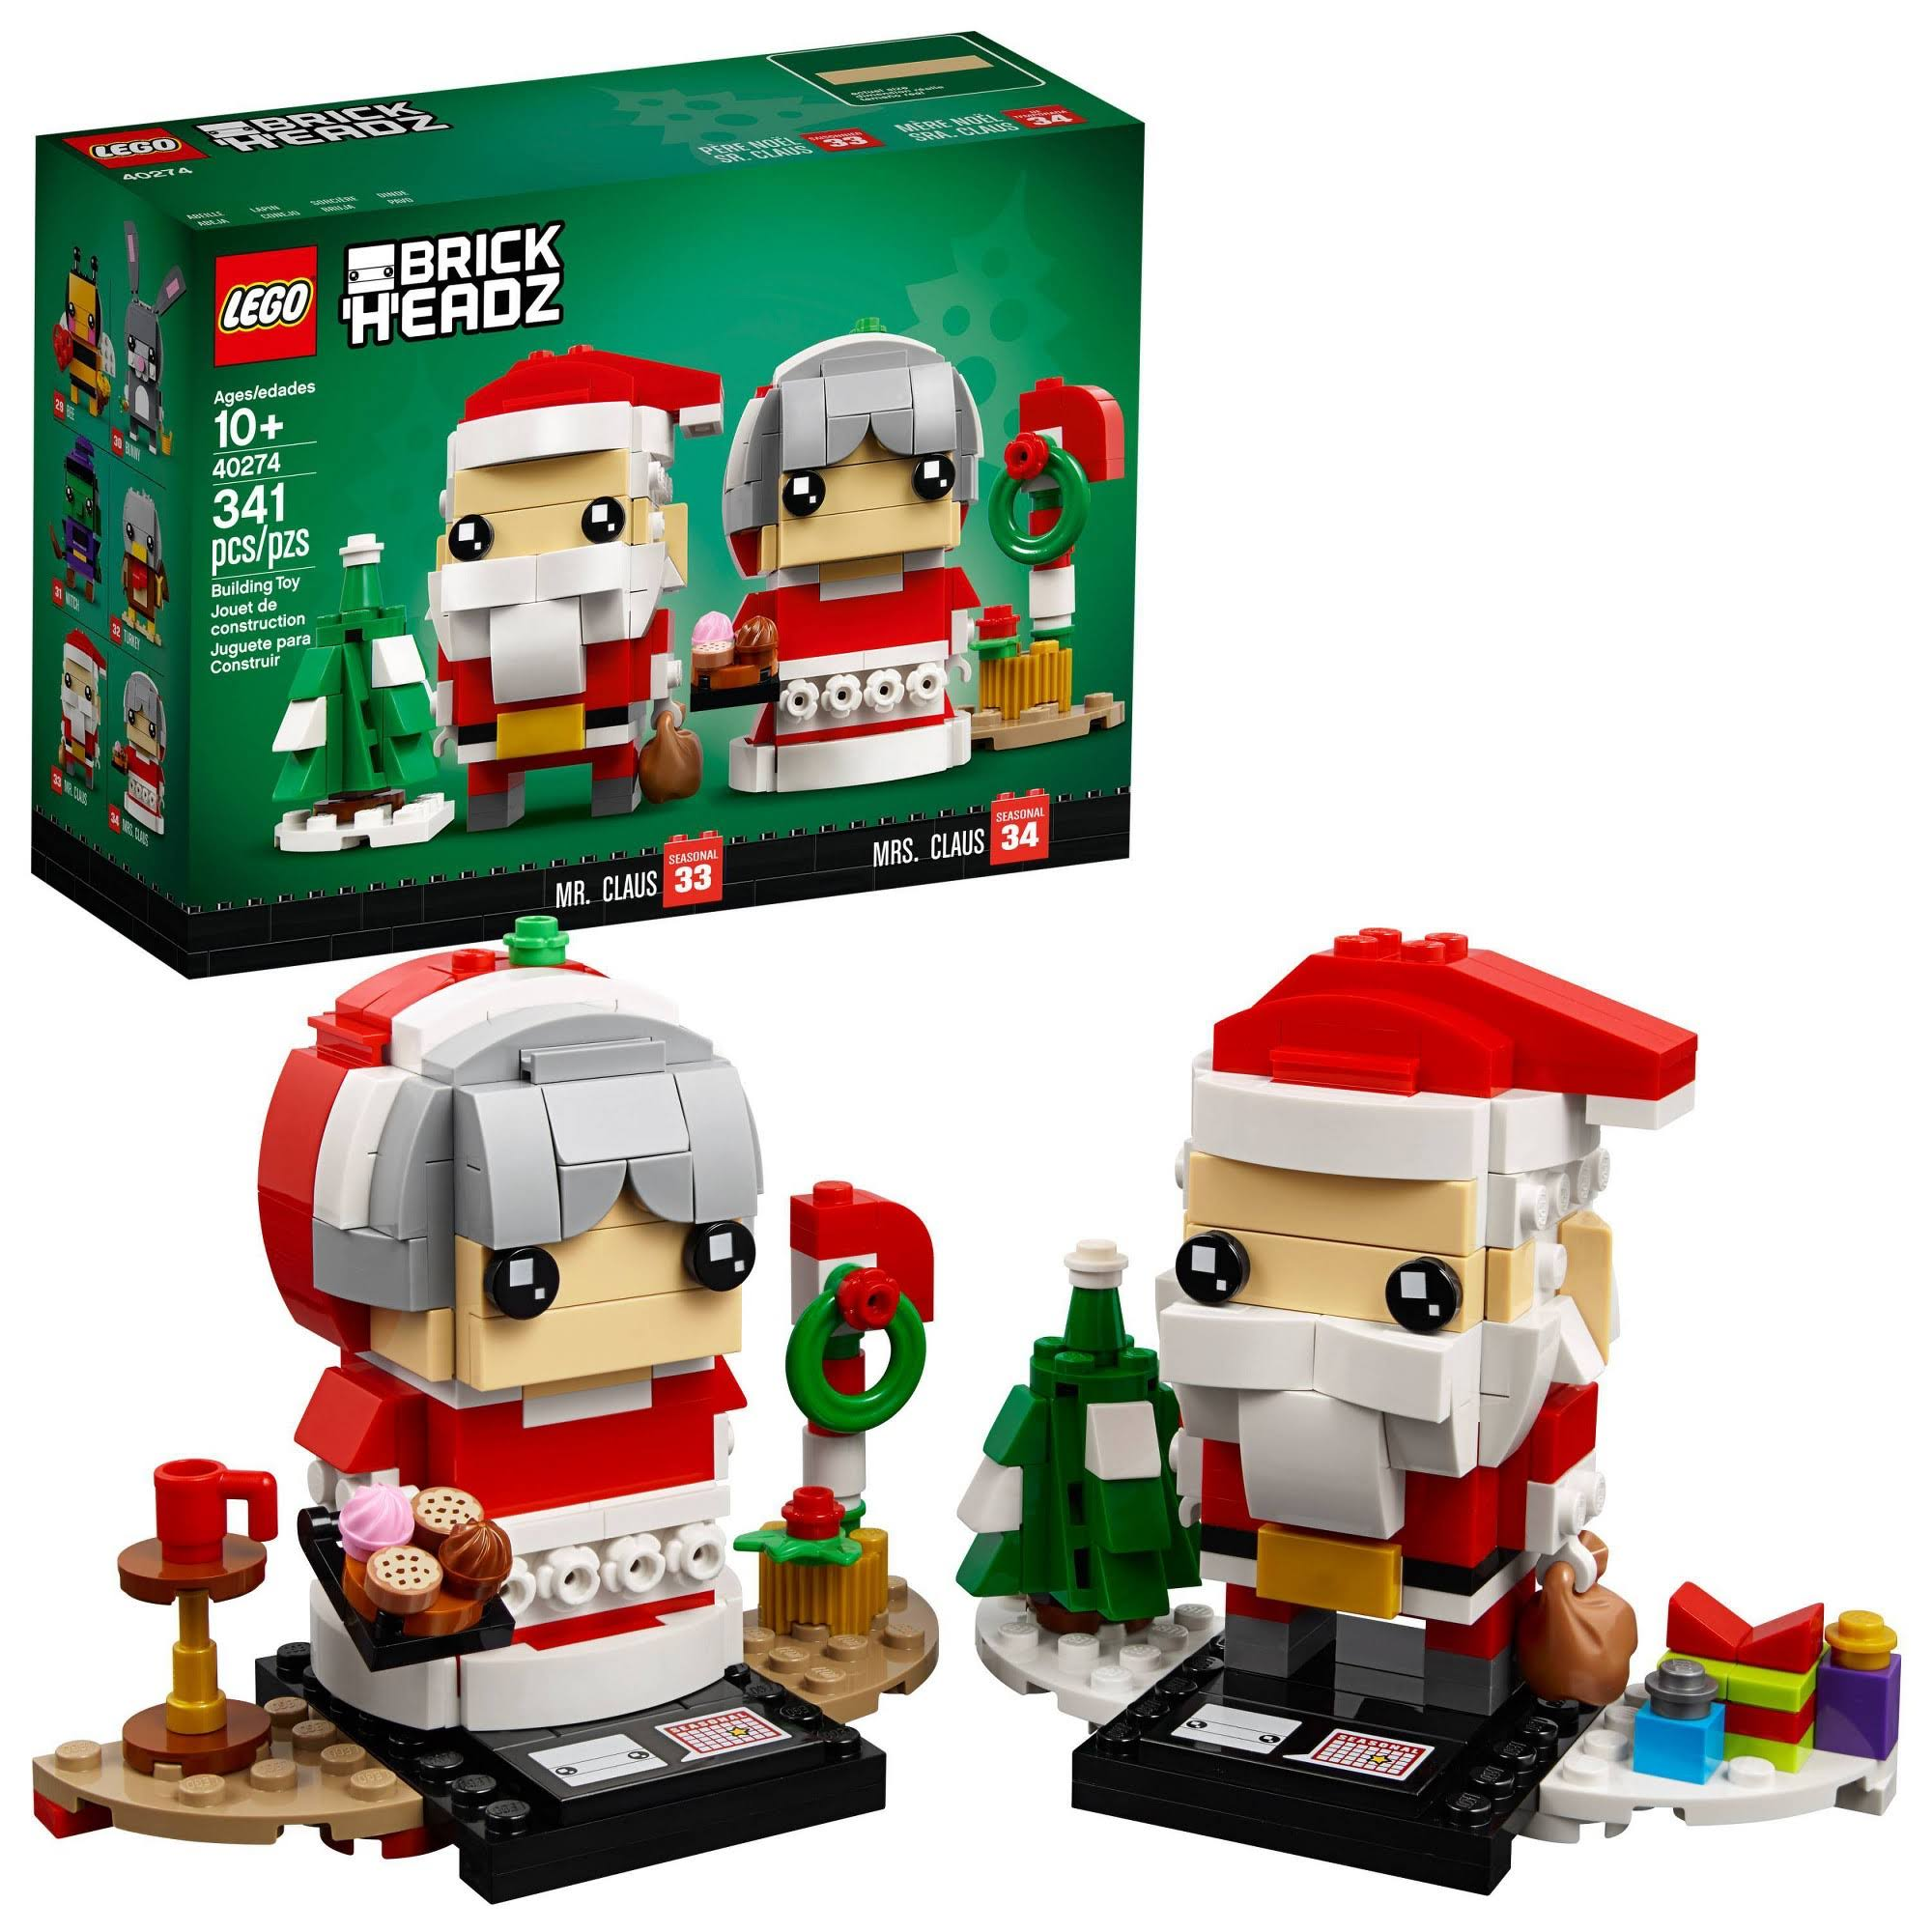 Lego Seasonal Brick Headz Mr. Mrs. Claus Set - 341pcs